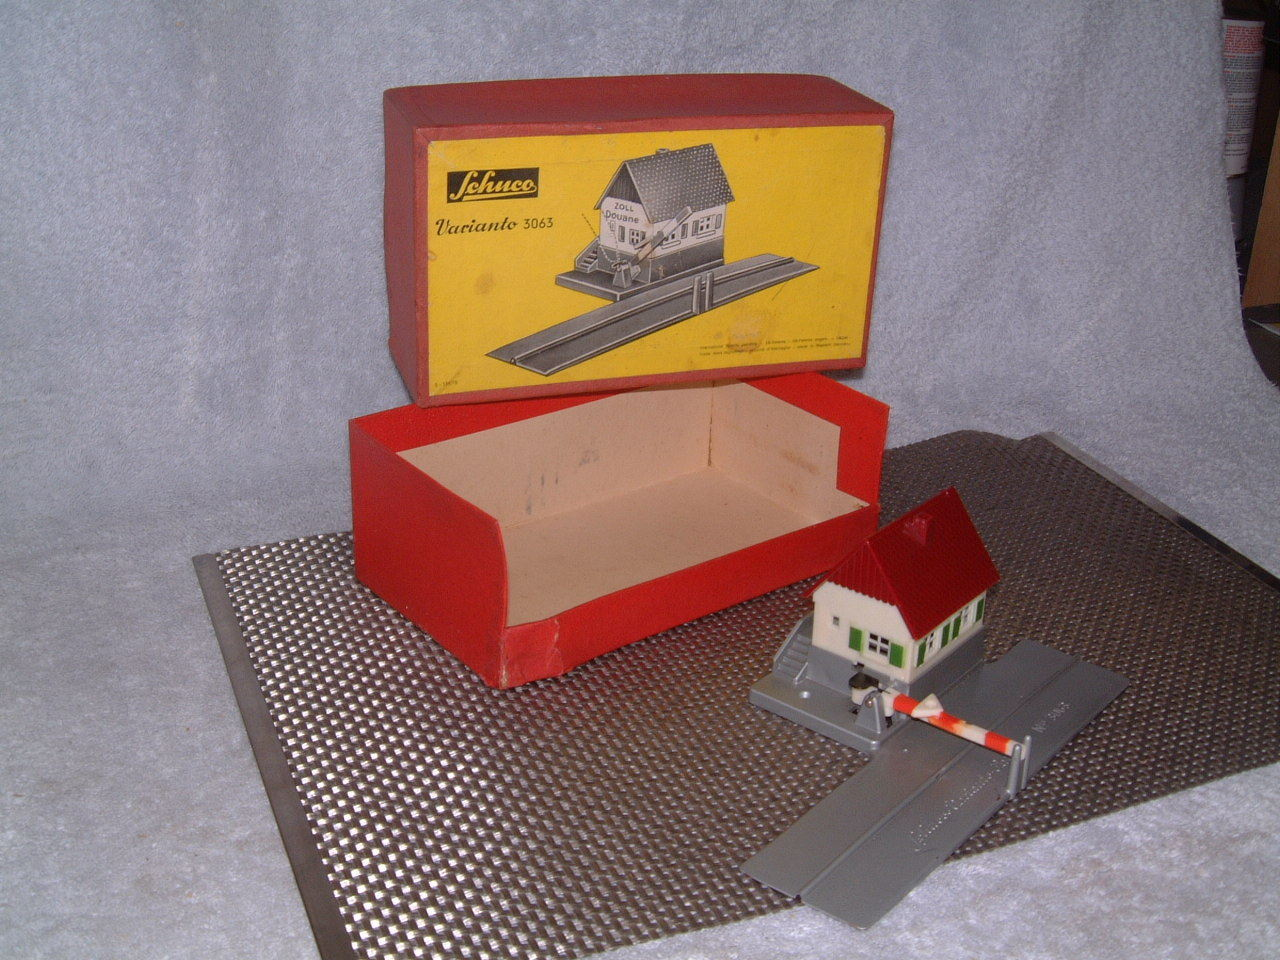 SCHUCO VARIANTO W. GERMANY, 3063  MANUALLY OPERATED TOLL HOUSE W ORIGINAL BOX